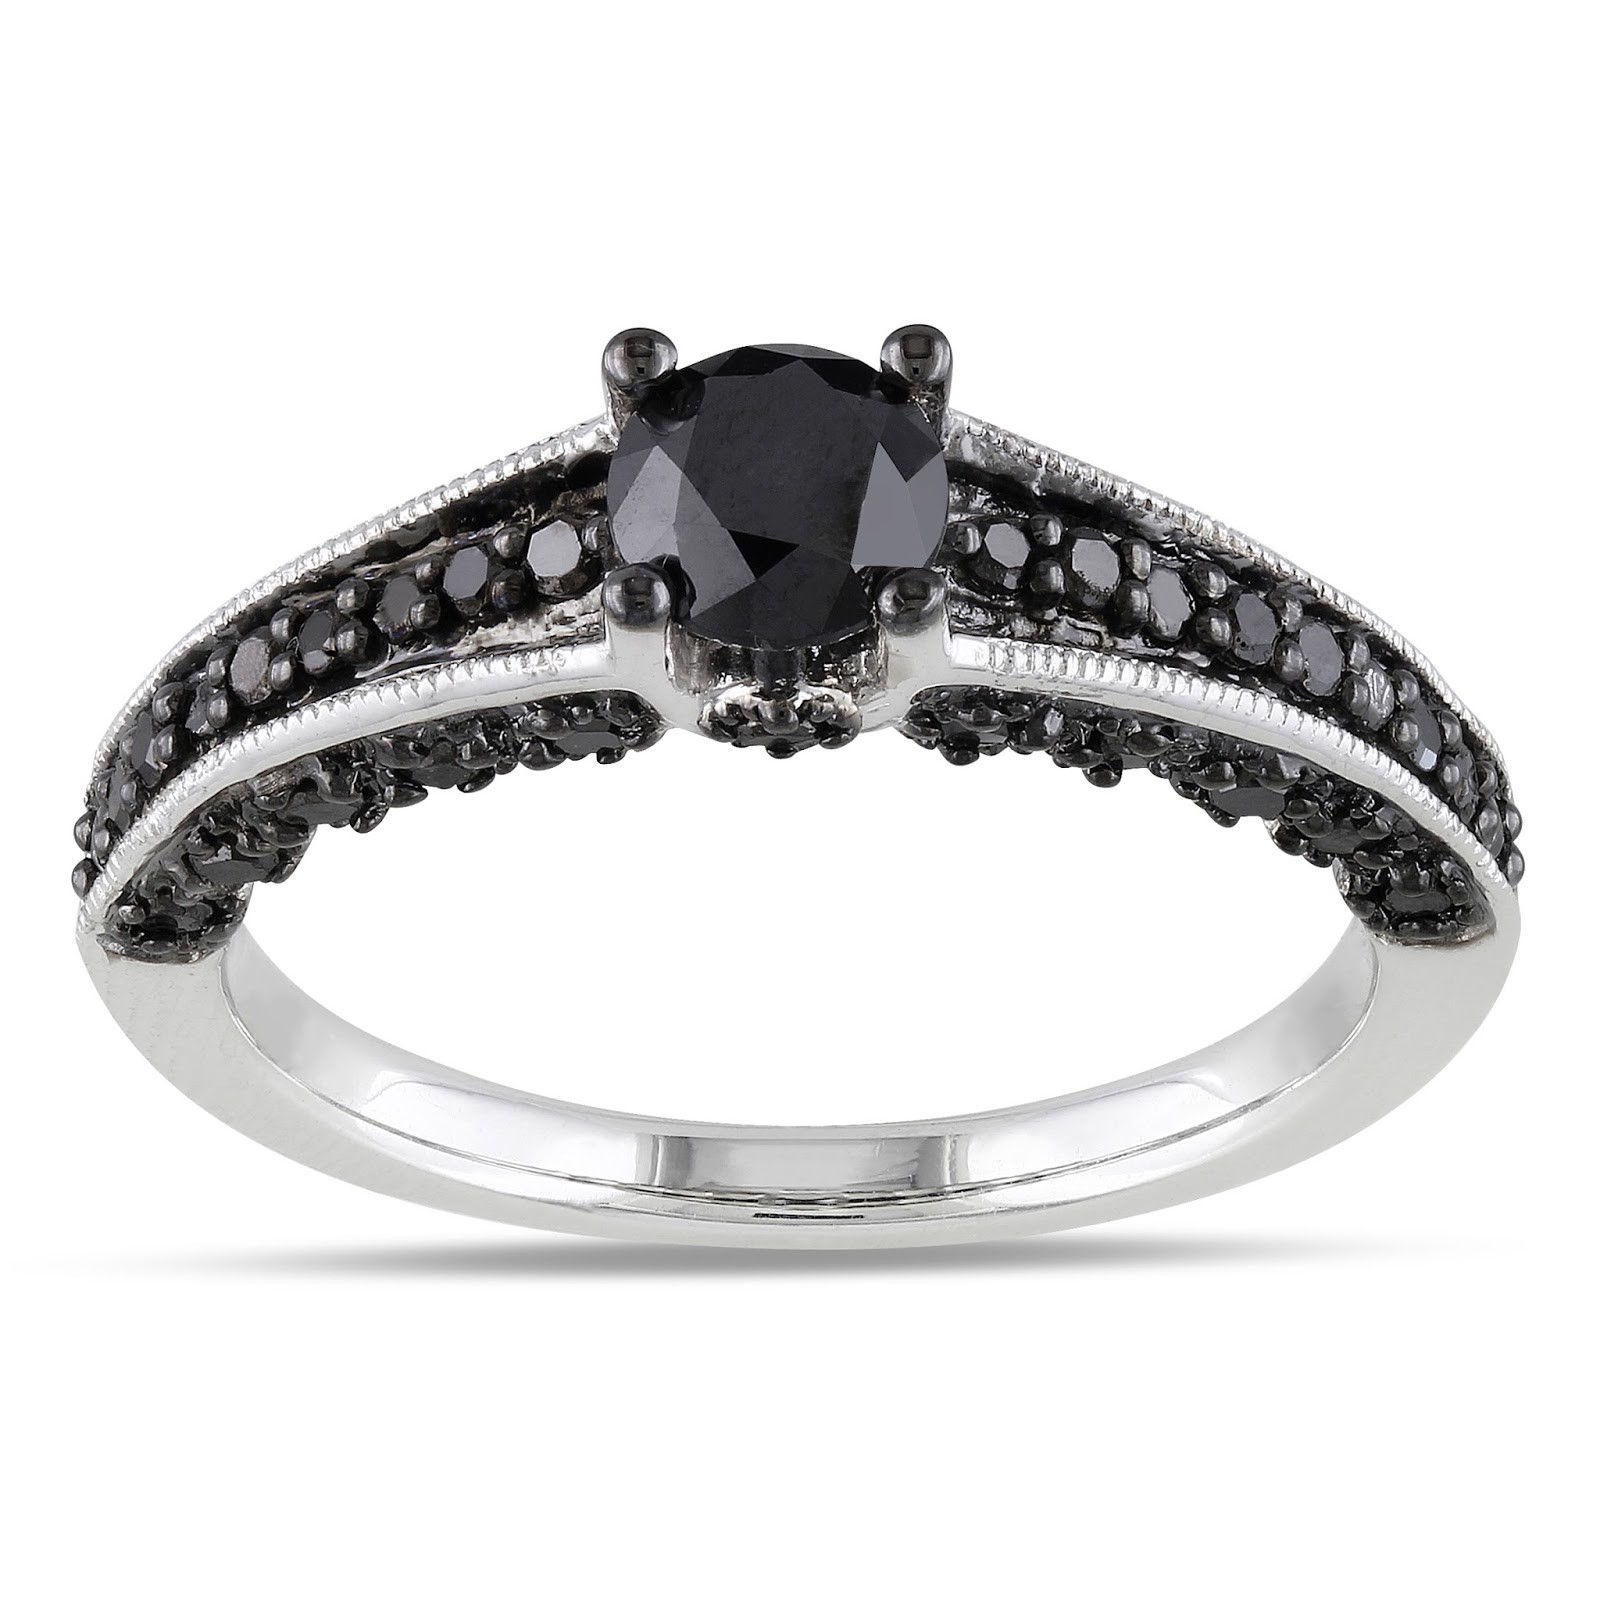 Mens Wedding Ring With Black Diamonds Laura Williams